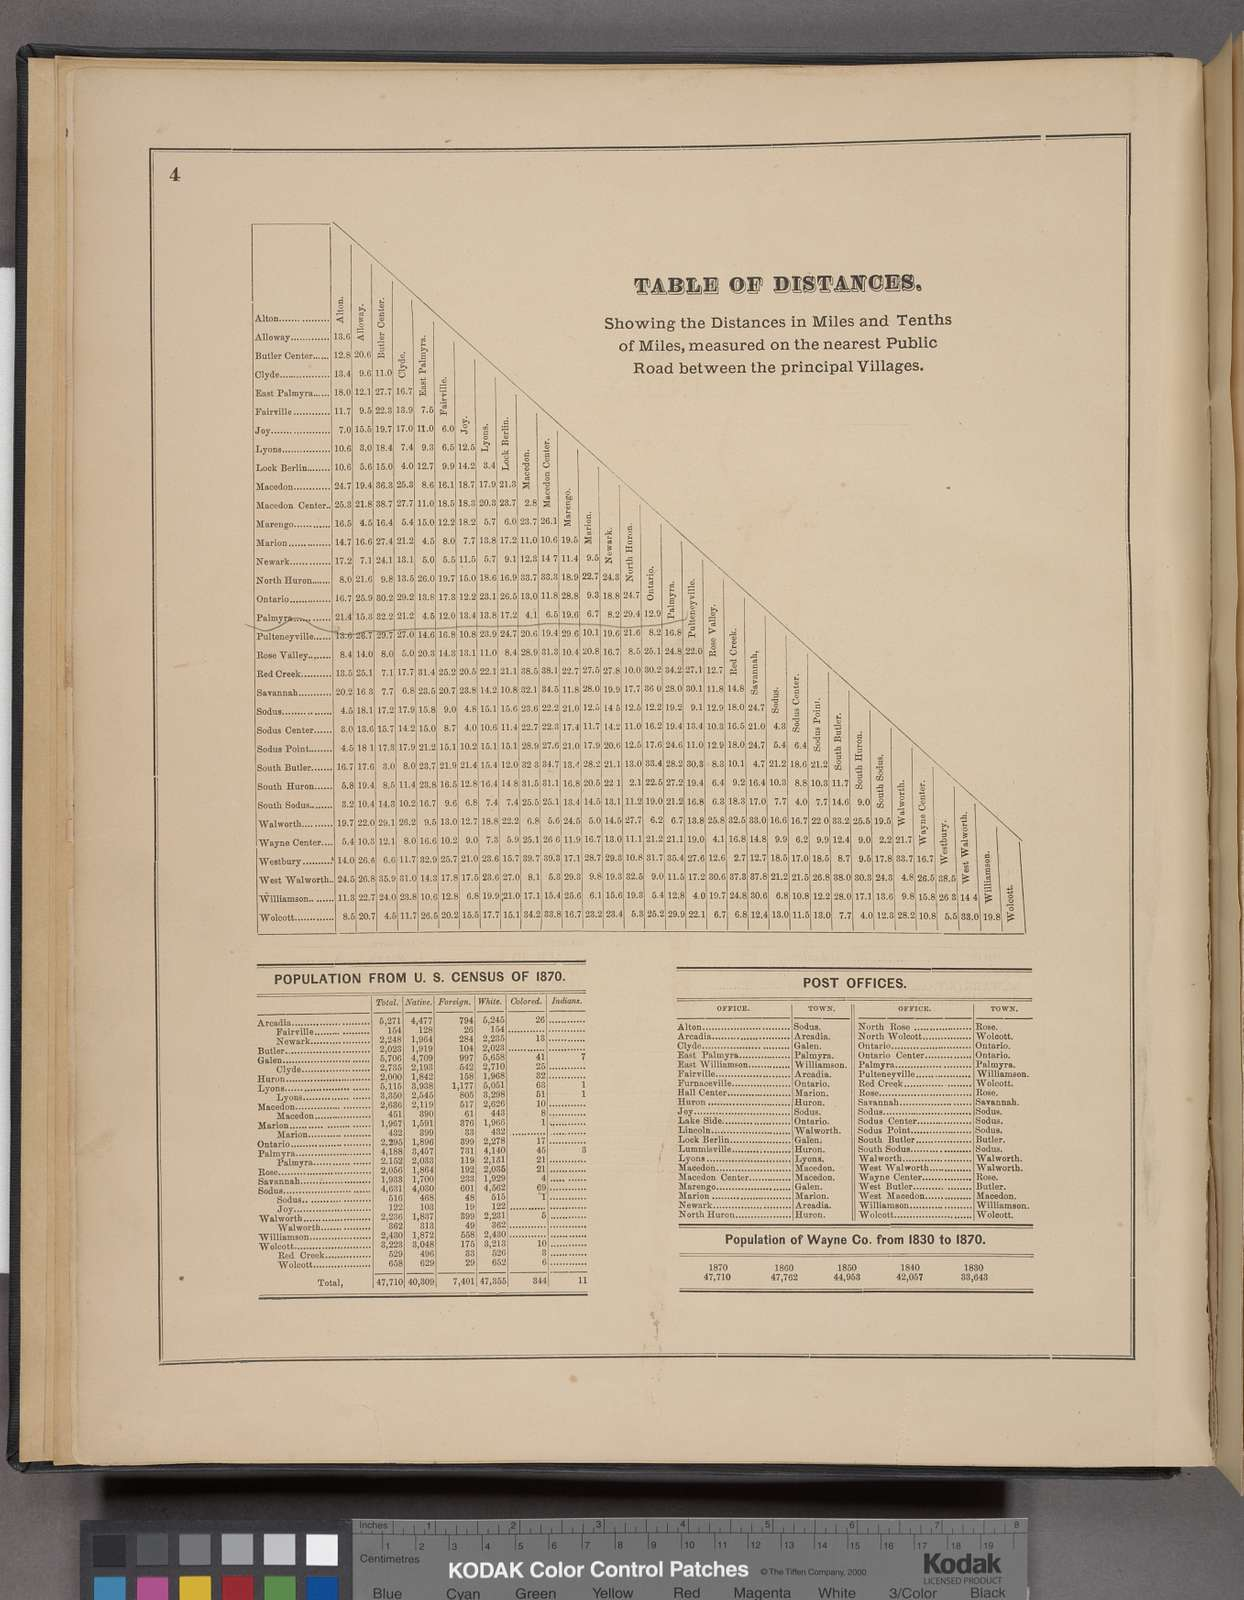 Table of Distances. ; Population from U.S. Census of 1870. ; Post Offices. ; Population of Wayne Co. from 1830 to 1870.